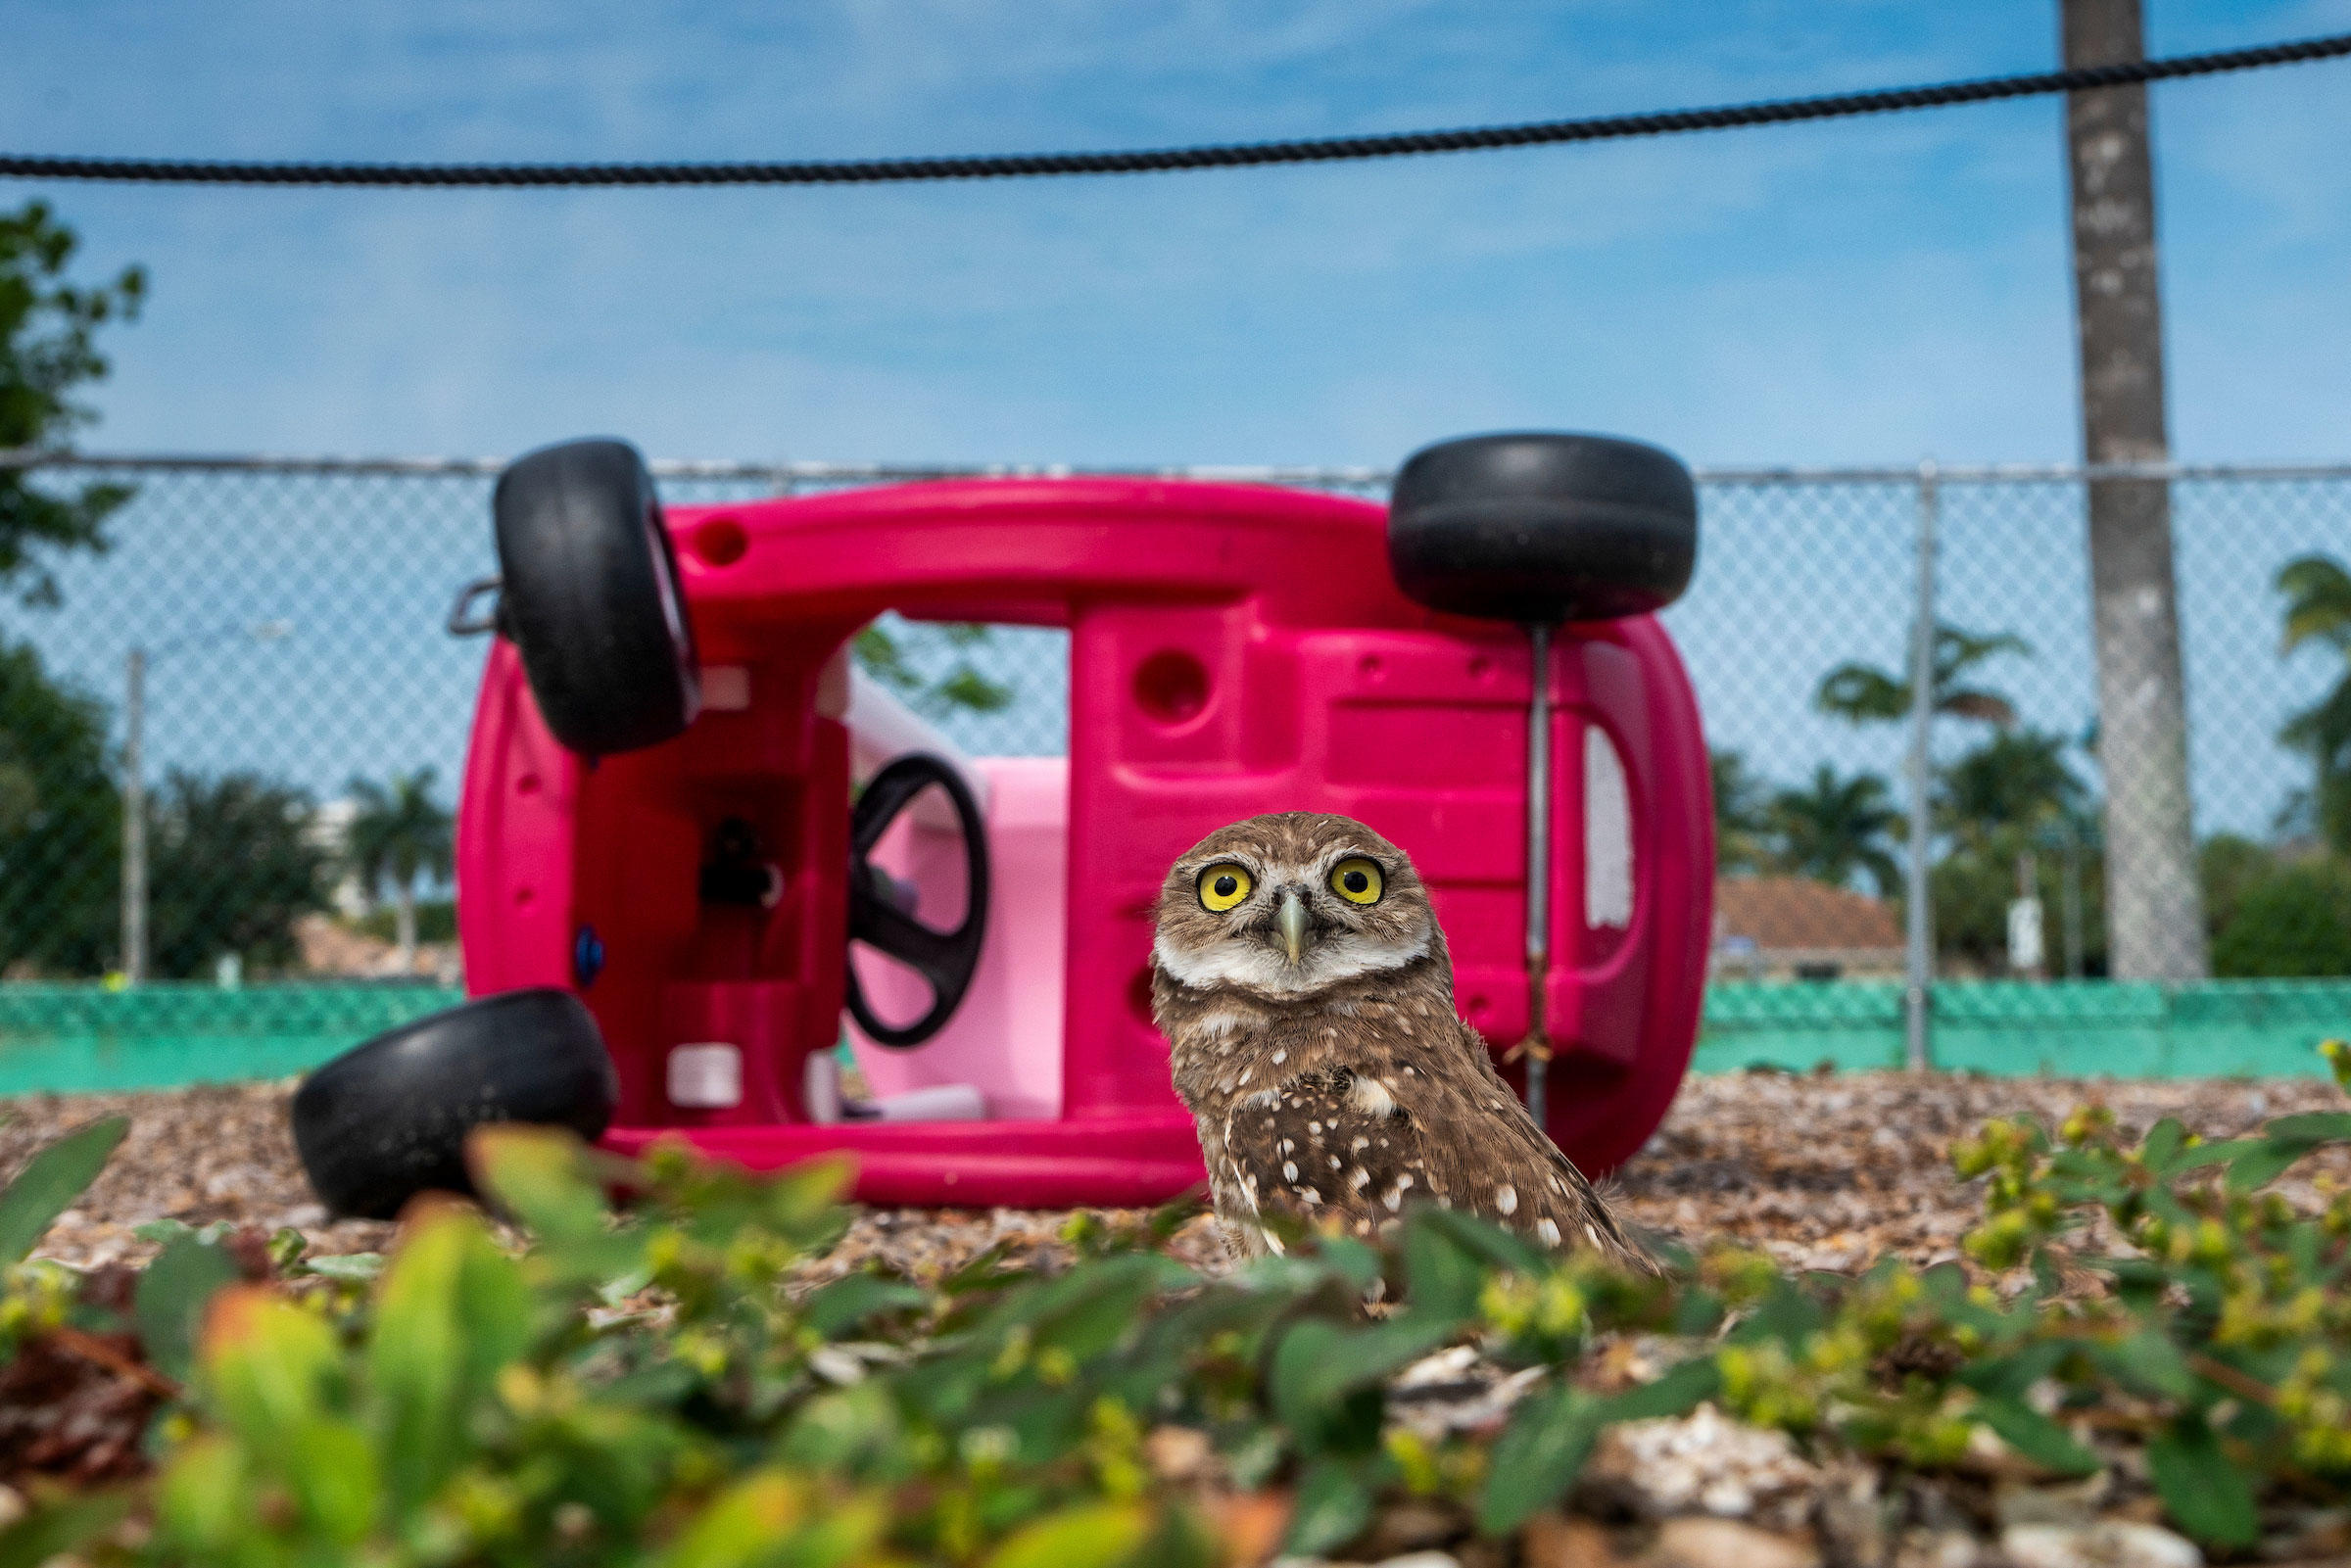 These owls nested in a church playground, which means it's off-limits to humans, lest they disturb the birds. Karine Aigner